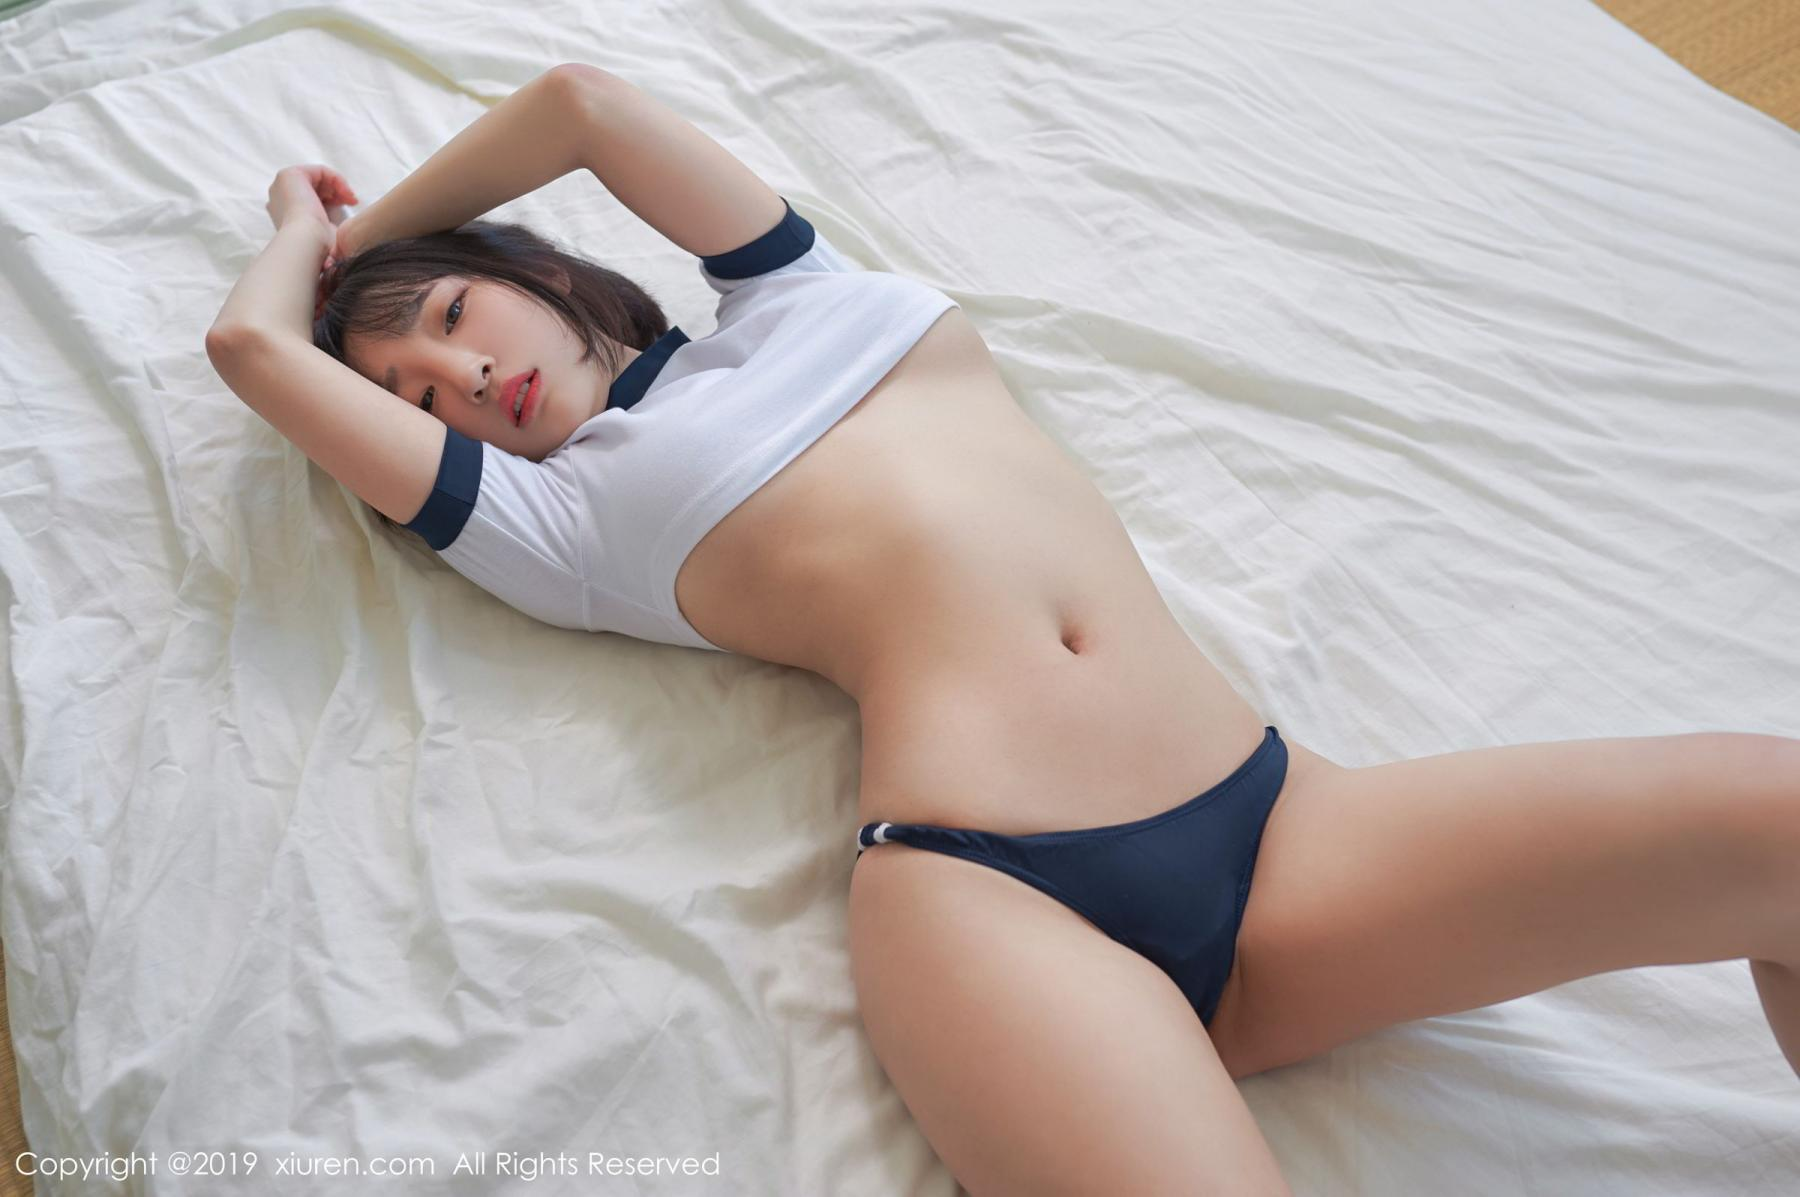 [XiuRen] Vol.1611 Model Qing Qing 41P, Beach, Bikini, Kang In Kyung, Xiuren